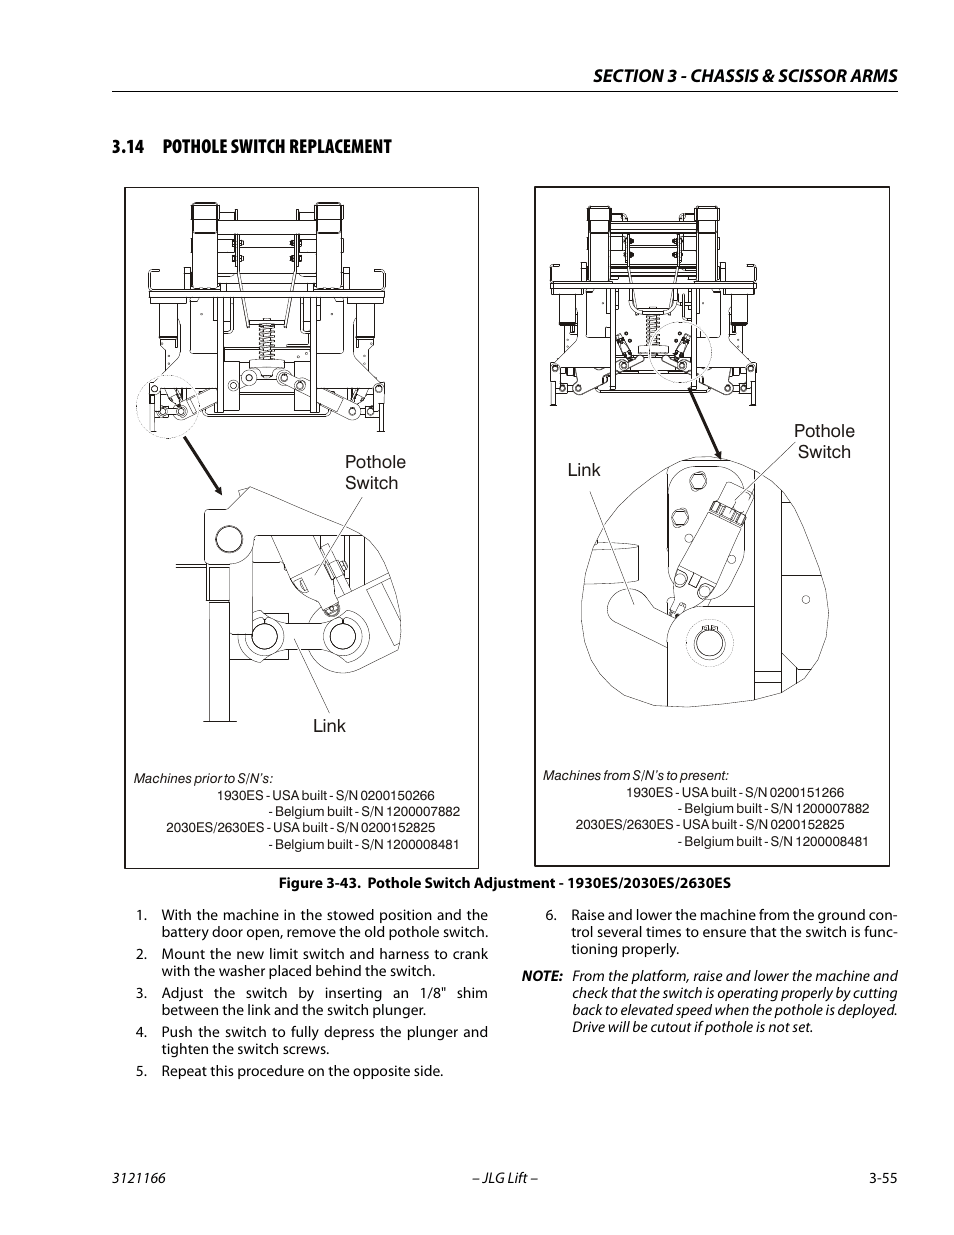 jlg 3246es service manual page91?resize\\\\\\\\\\\\\\\\\\\\\\\=665%2C861 chaparral 205 wiring diagram chaparral boat wiring waste tank chaparral boats wiring diagrams at arjmand.co